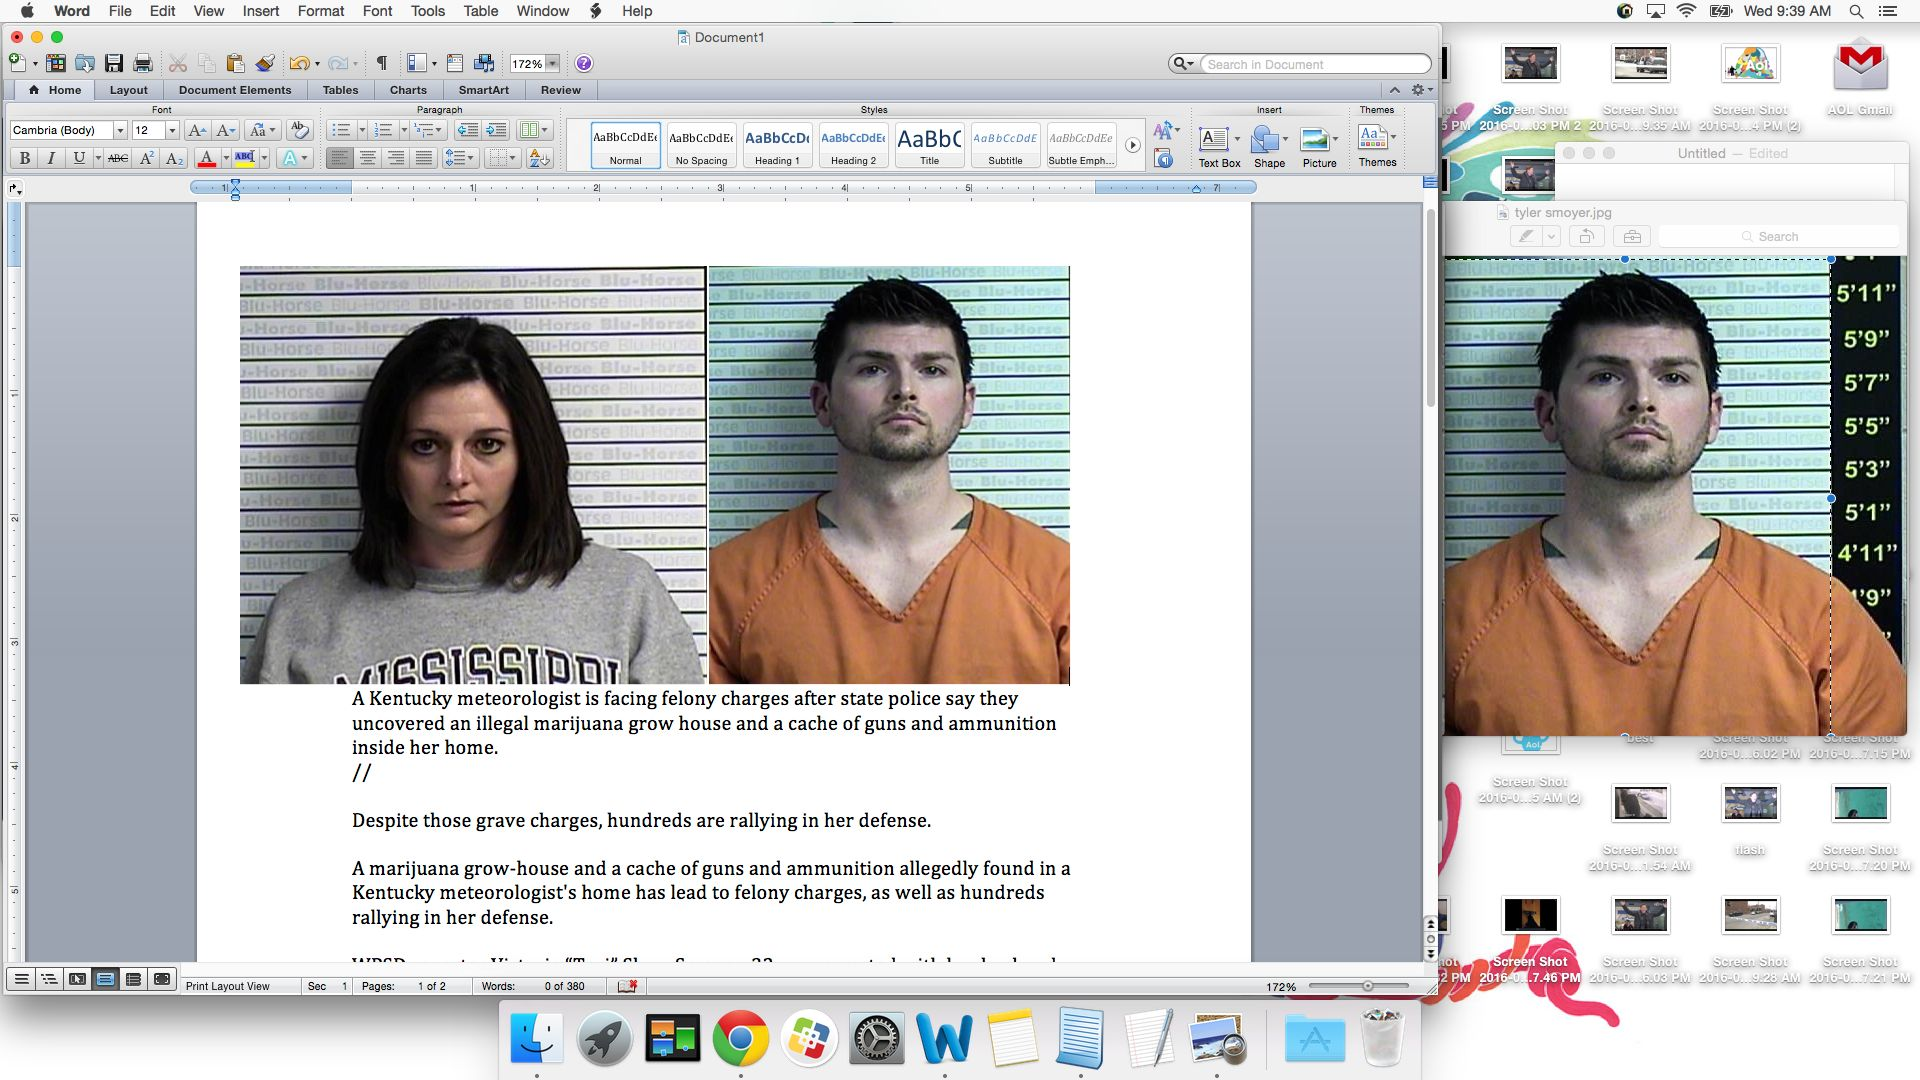 Victoria Shaw Smoyer, 32, and Tyler Smoyer, 35, are facing felony charges after state police say they uncovered an illegal gr